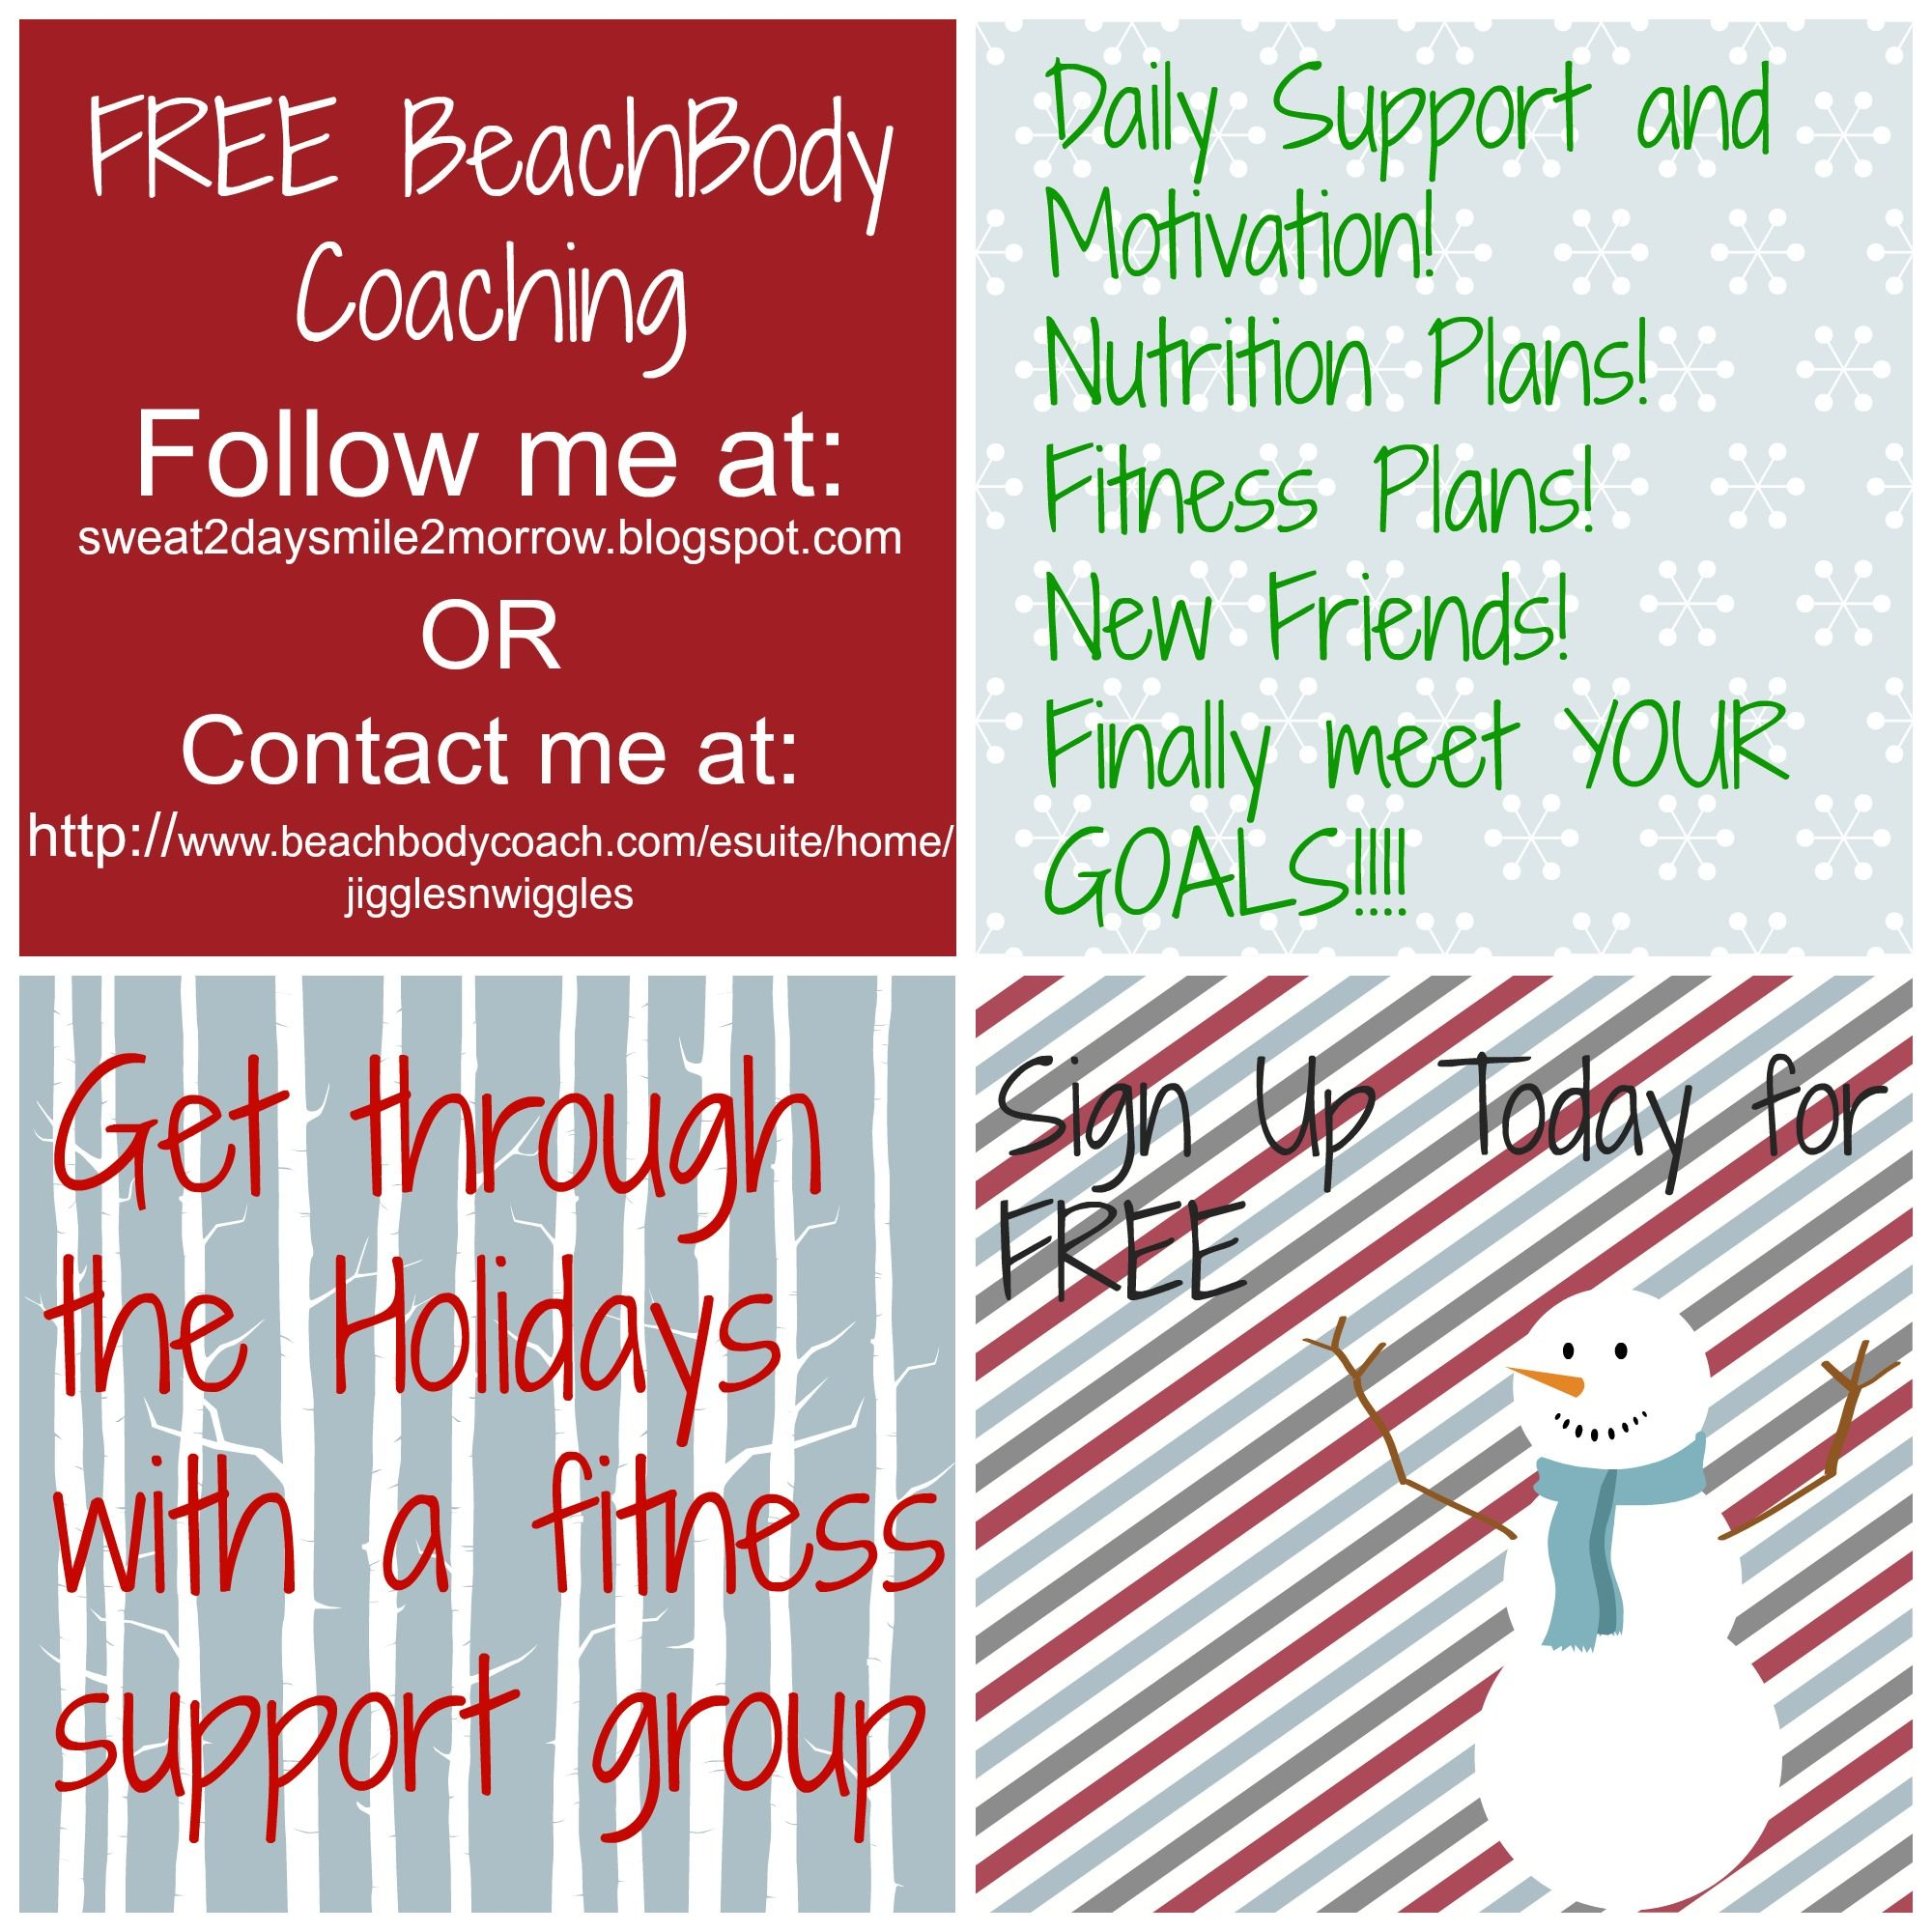 FREE BEACHBODY COACHING #fitness #motivation #Christmas #Holidays #support #clean eating #FUN